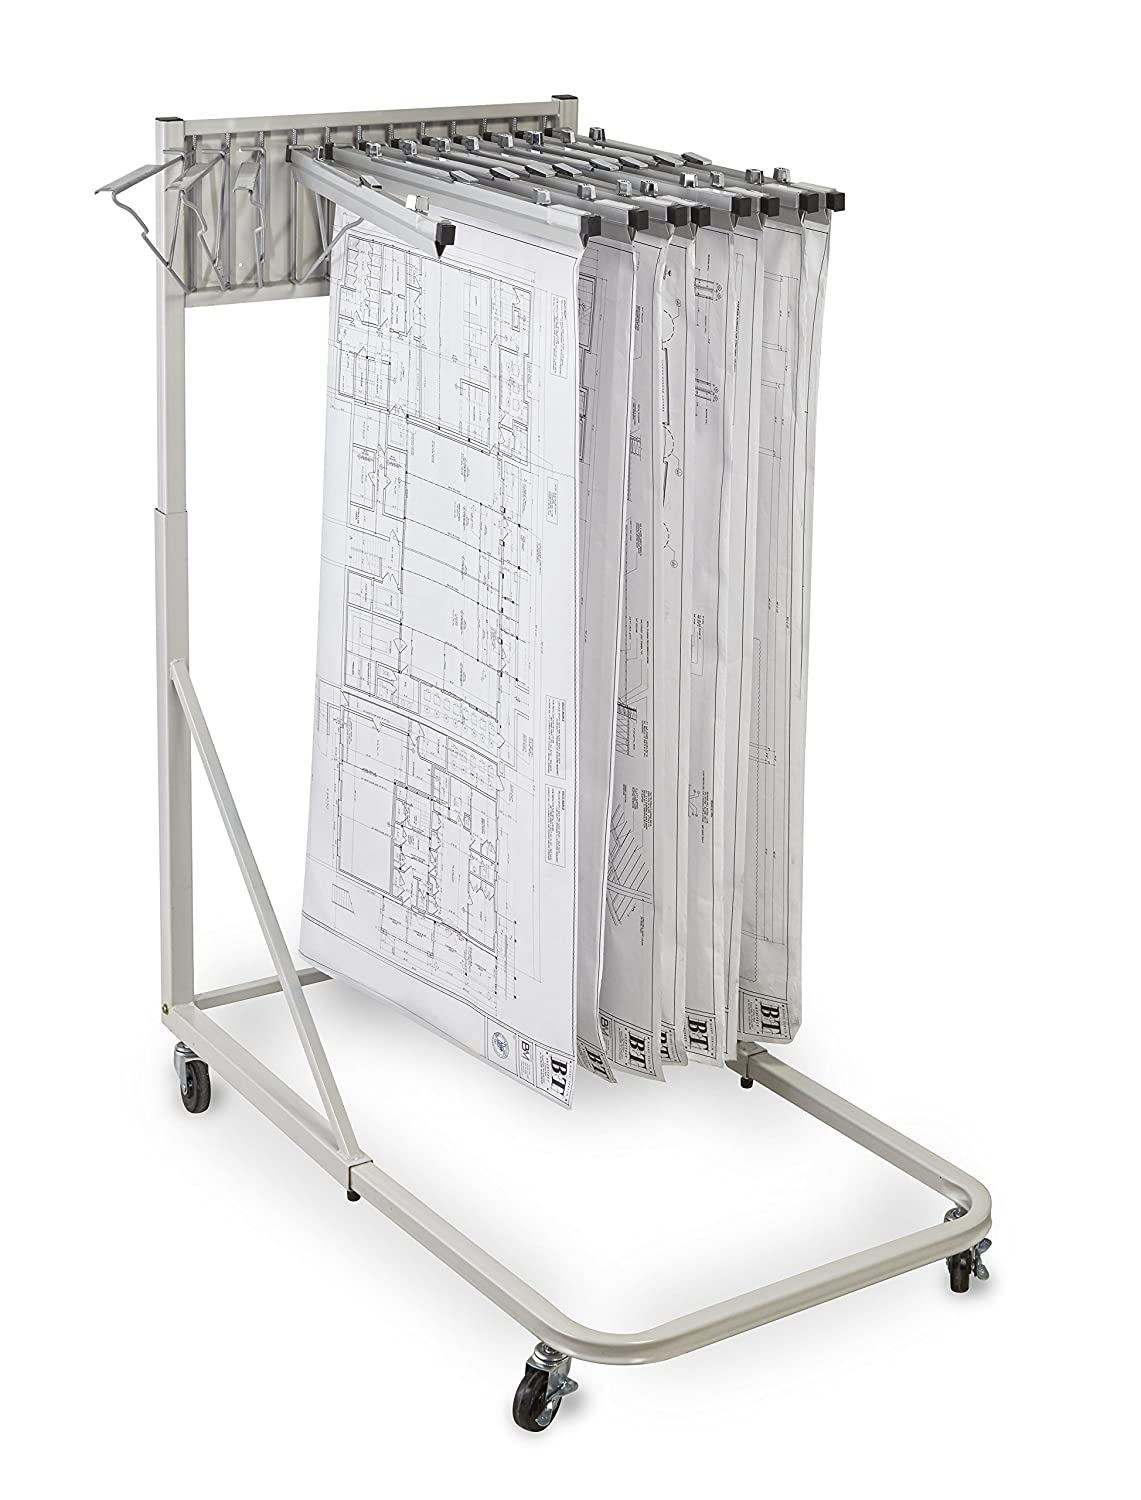 Adir Corp. 613 Vertical File Rolling Stand for Blueprints - Sand Beige ADI613